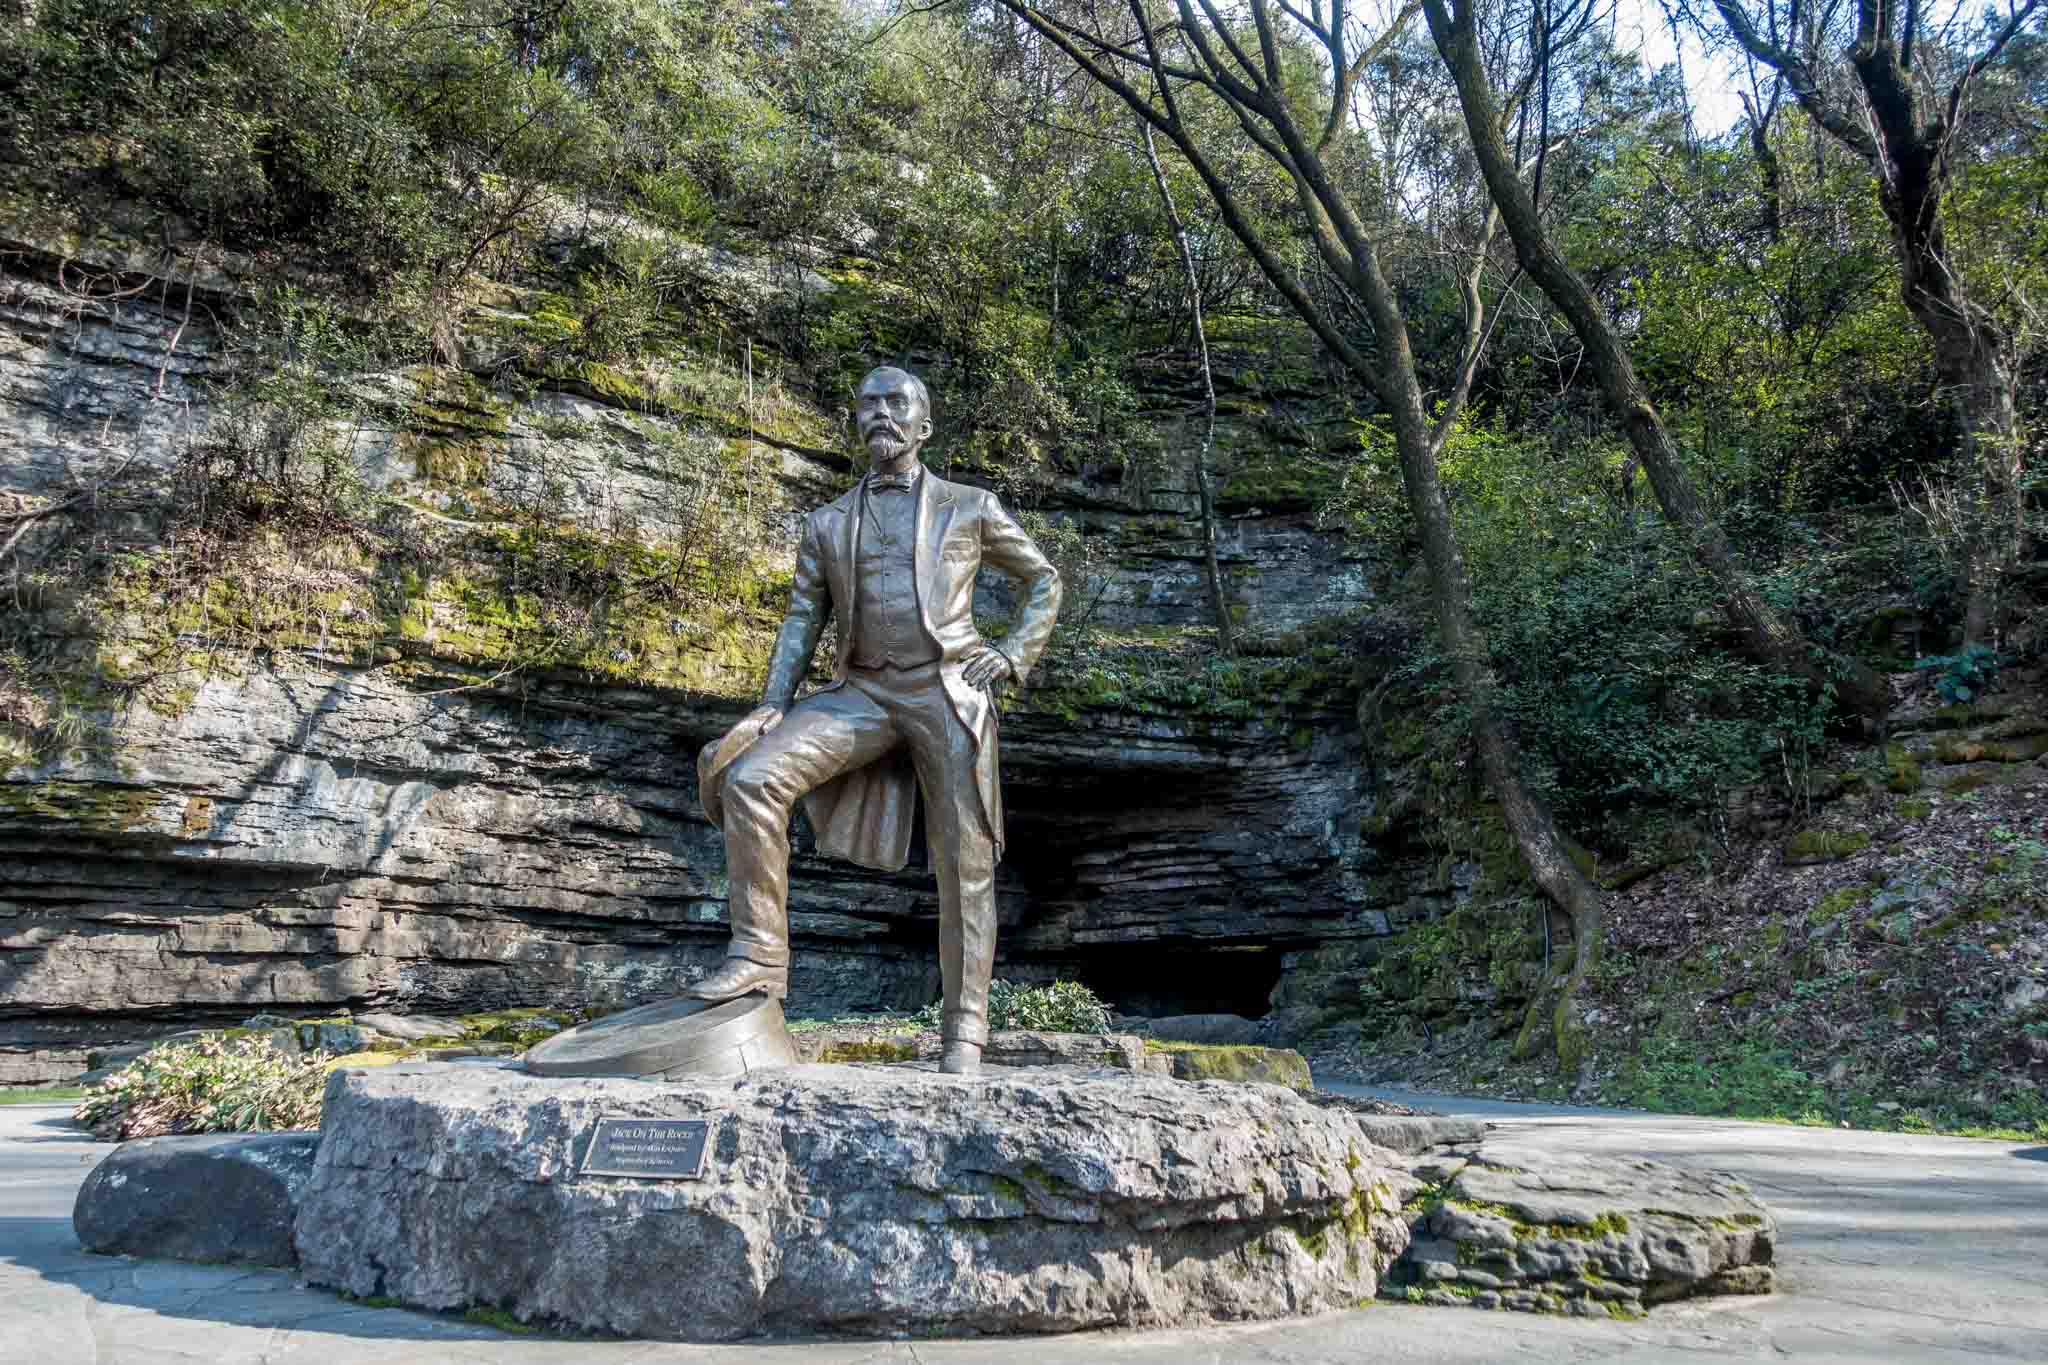 Statue of Jack Daniel in front of a cave spring